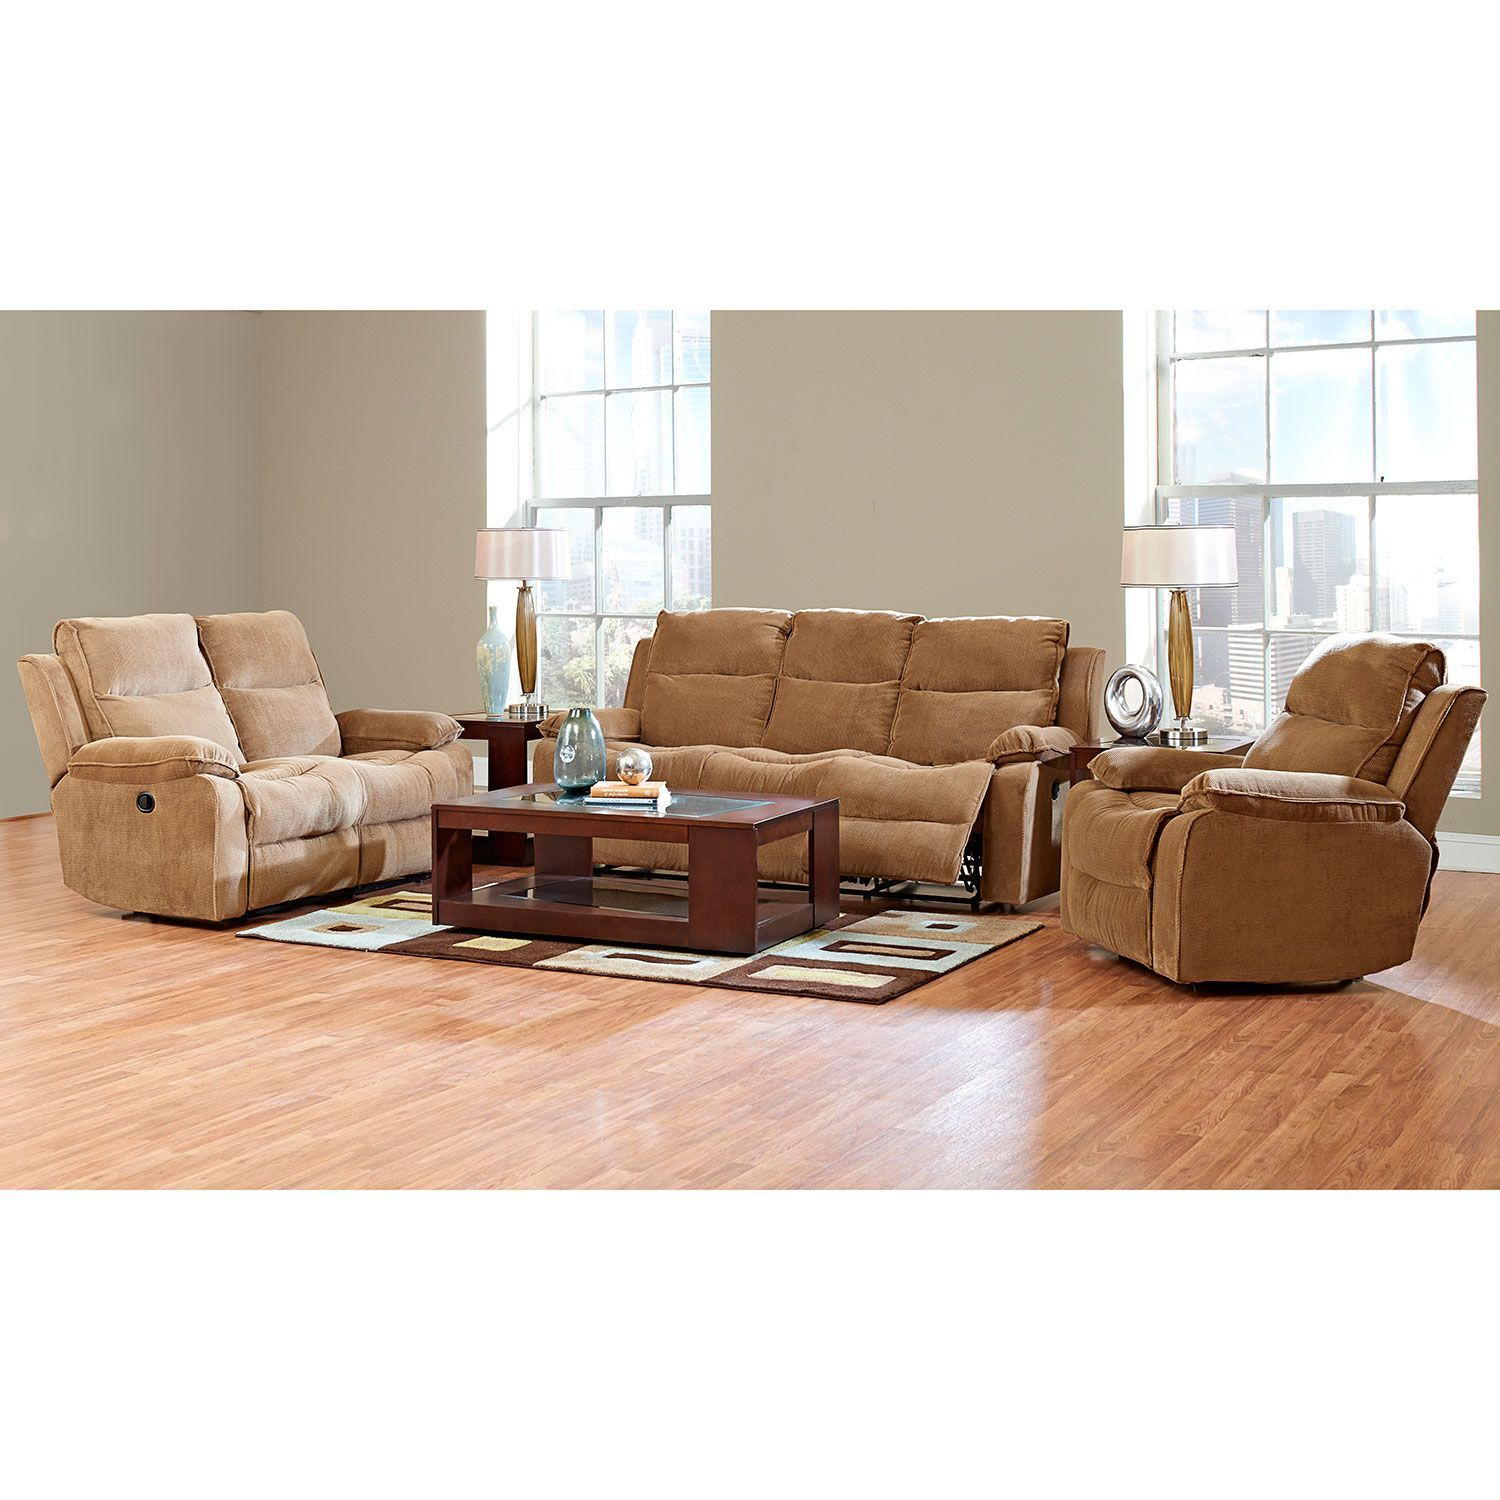 Crawford Reclining Sofa Reclining Loveseat and Reclining Chair